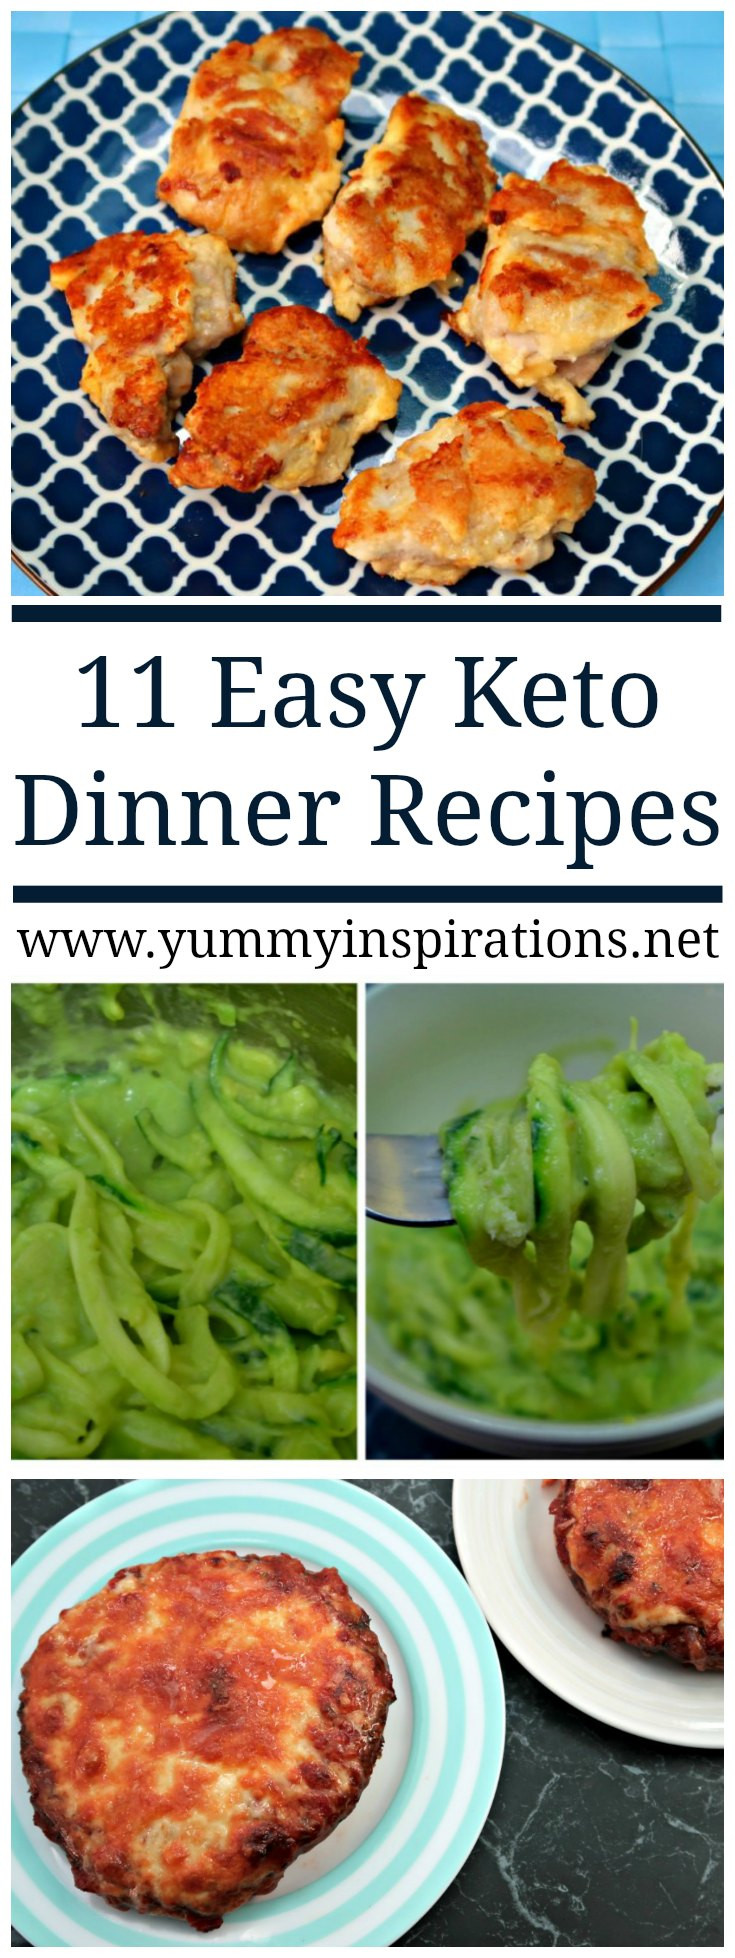 Quick Keto Dinner  11 Easy Keto Dinner Recipes Quick Low Carb Ketogenic